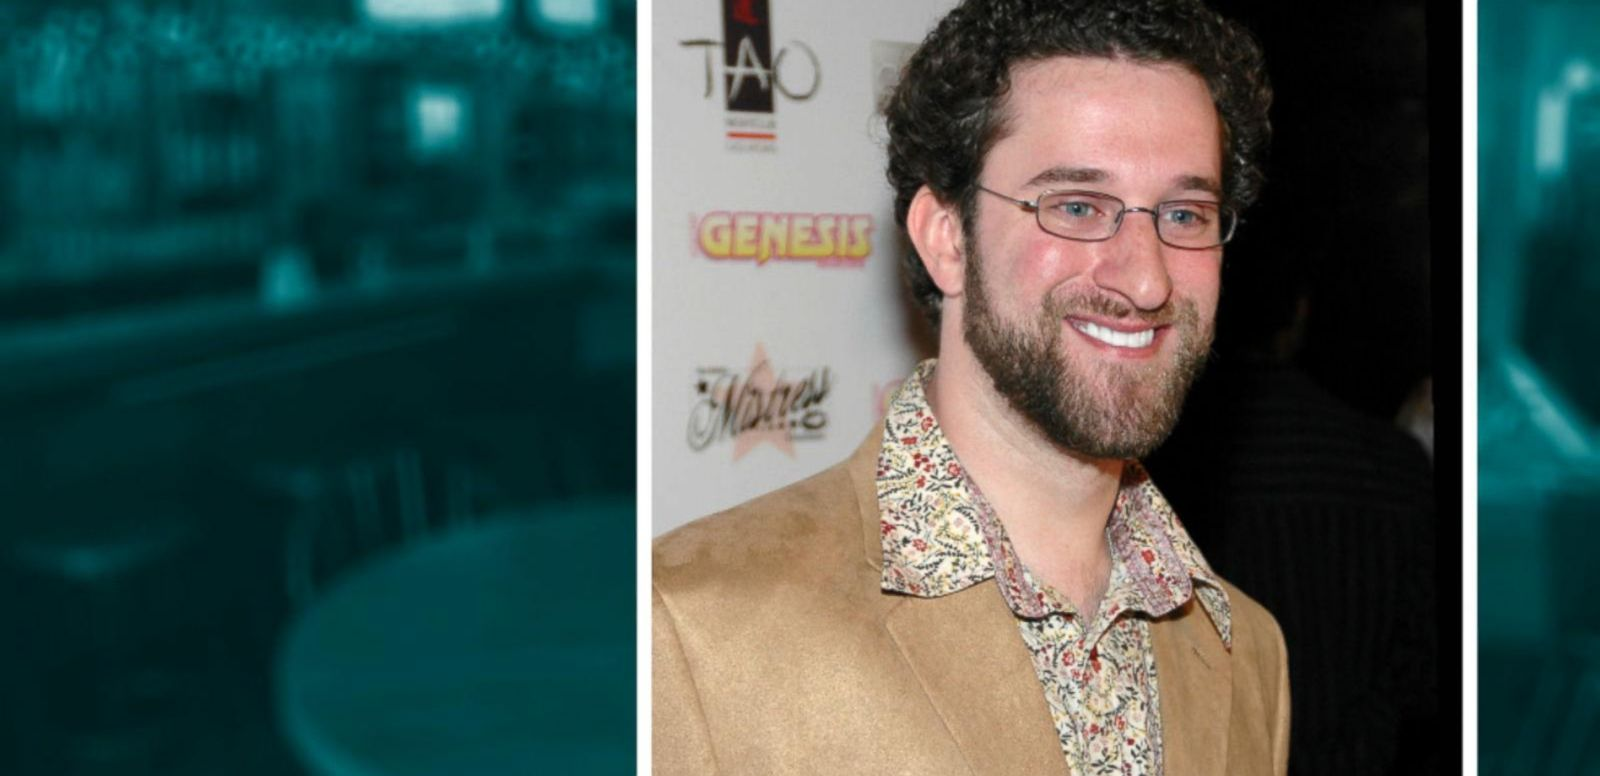 VIDEO: 'Save By the Bell' Star Dustin Diamond Arrested for Bar Room Stabbing